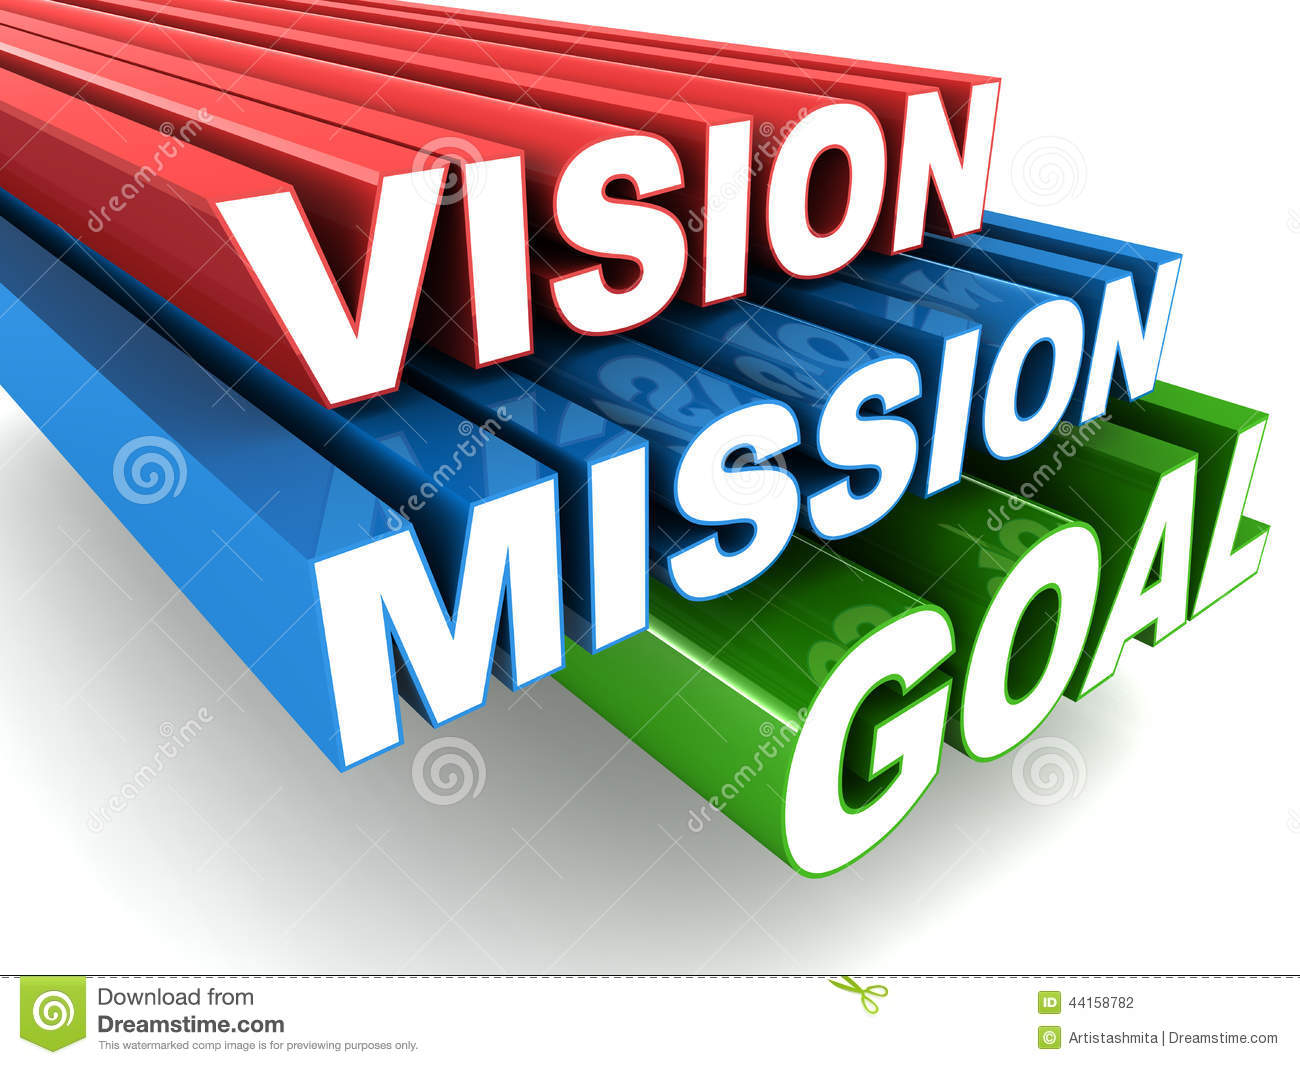 Missions clipart mission vision, Missions mission vision.